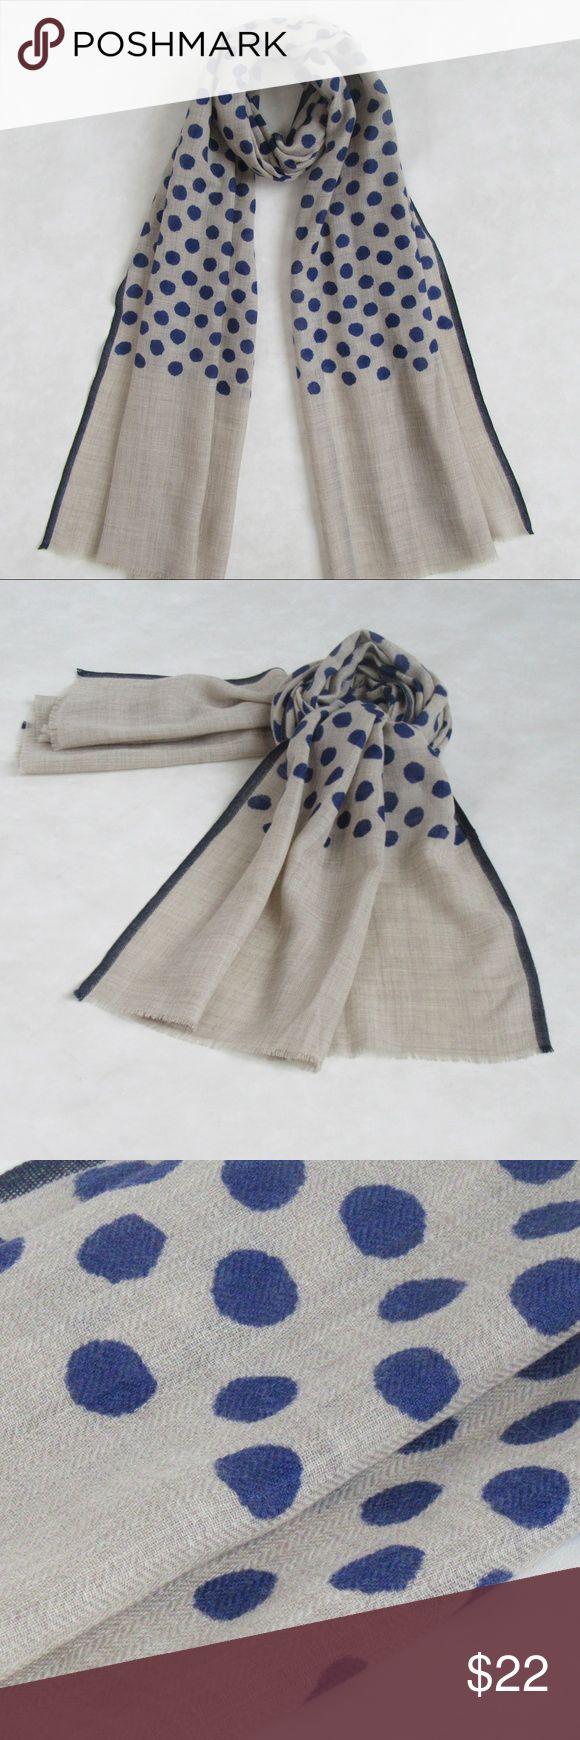 """NWT! NAVY Polka Dot Wool Blend Scarf; Spring Eve! OVERVIEW: - Oblong woolen scarf, polka dots, raw edges & contrasting thin border. - Extremely light weight & super soft on the neck  PRODUCT DETAILS: STYLE # EB-SCV-299 NAVY TYPE: OBLONG MATERIAL : 98% Wool + 2% Silk DIMENSIONS : L 74"""" X W 22""""  Wash care: Hand wash, lay flat to dry; warm iron if needed 7 Artisan Street ® Accessories Scarves & Wraps"""